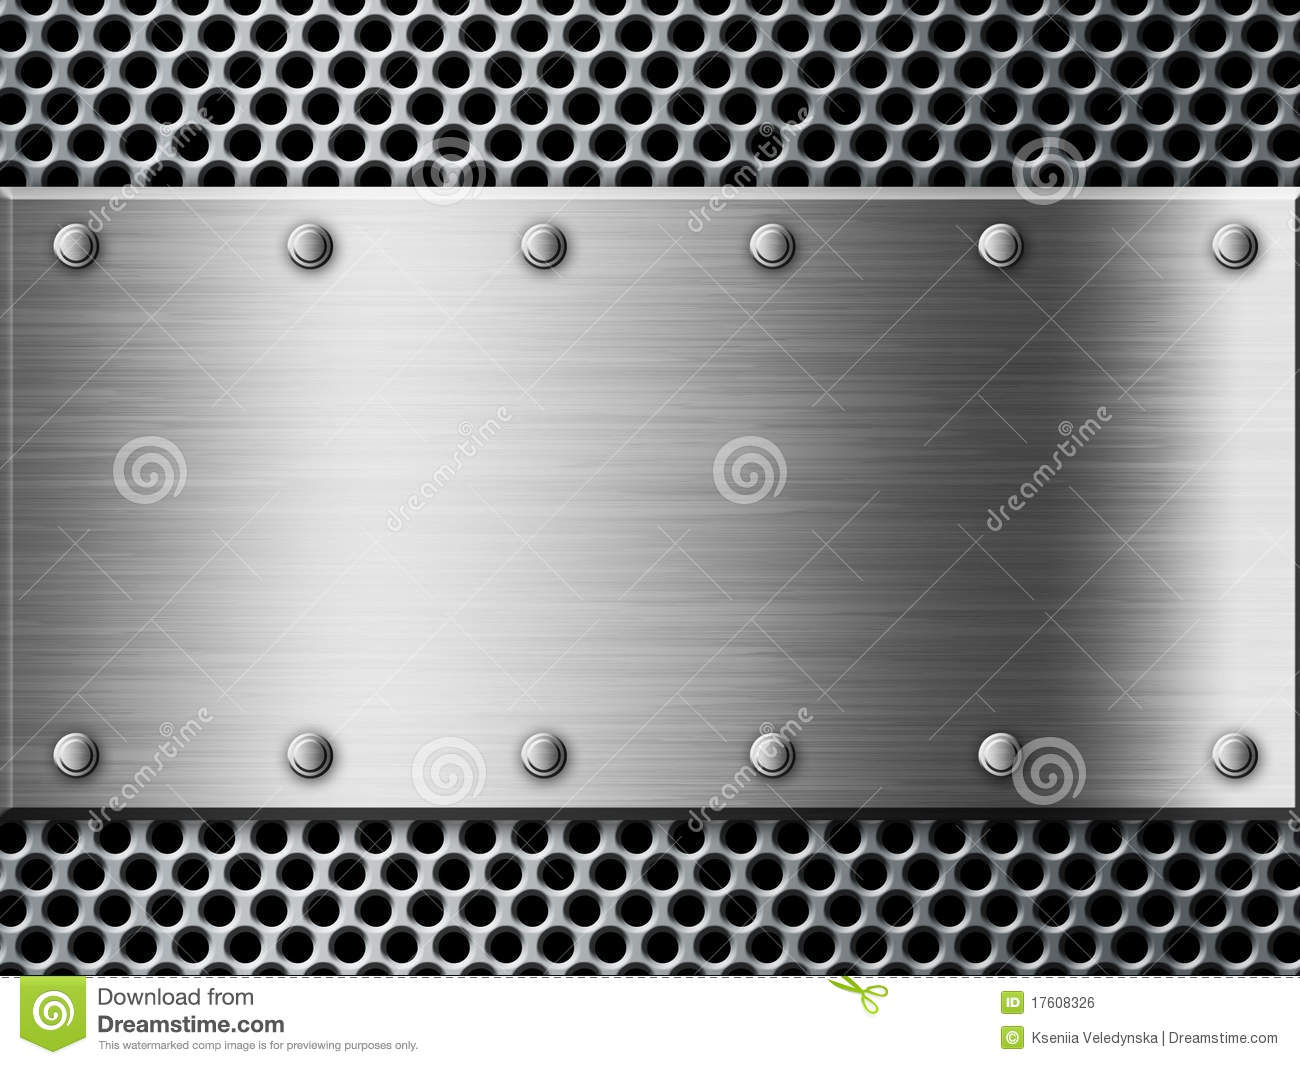 3d Wood Effect Wallpaper Silver Metal Plate Background Royalty Free Stock Image